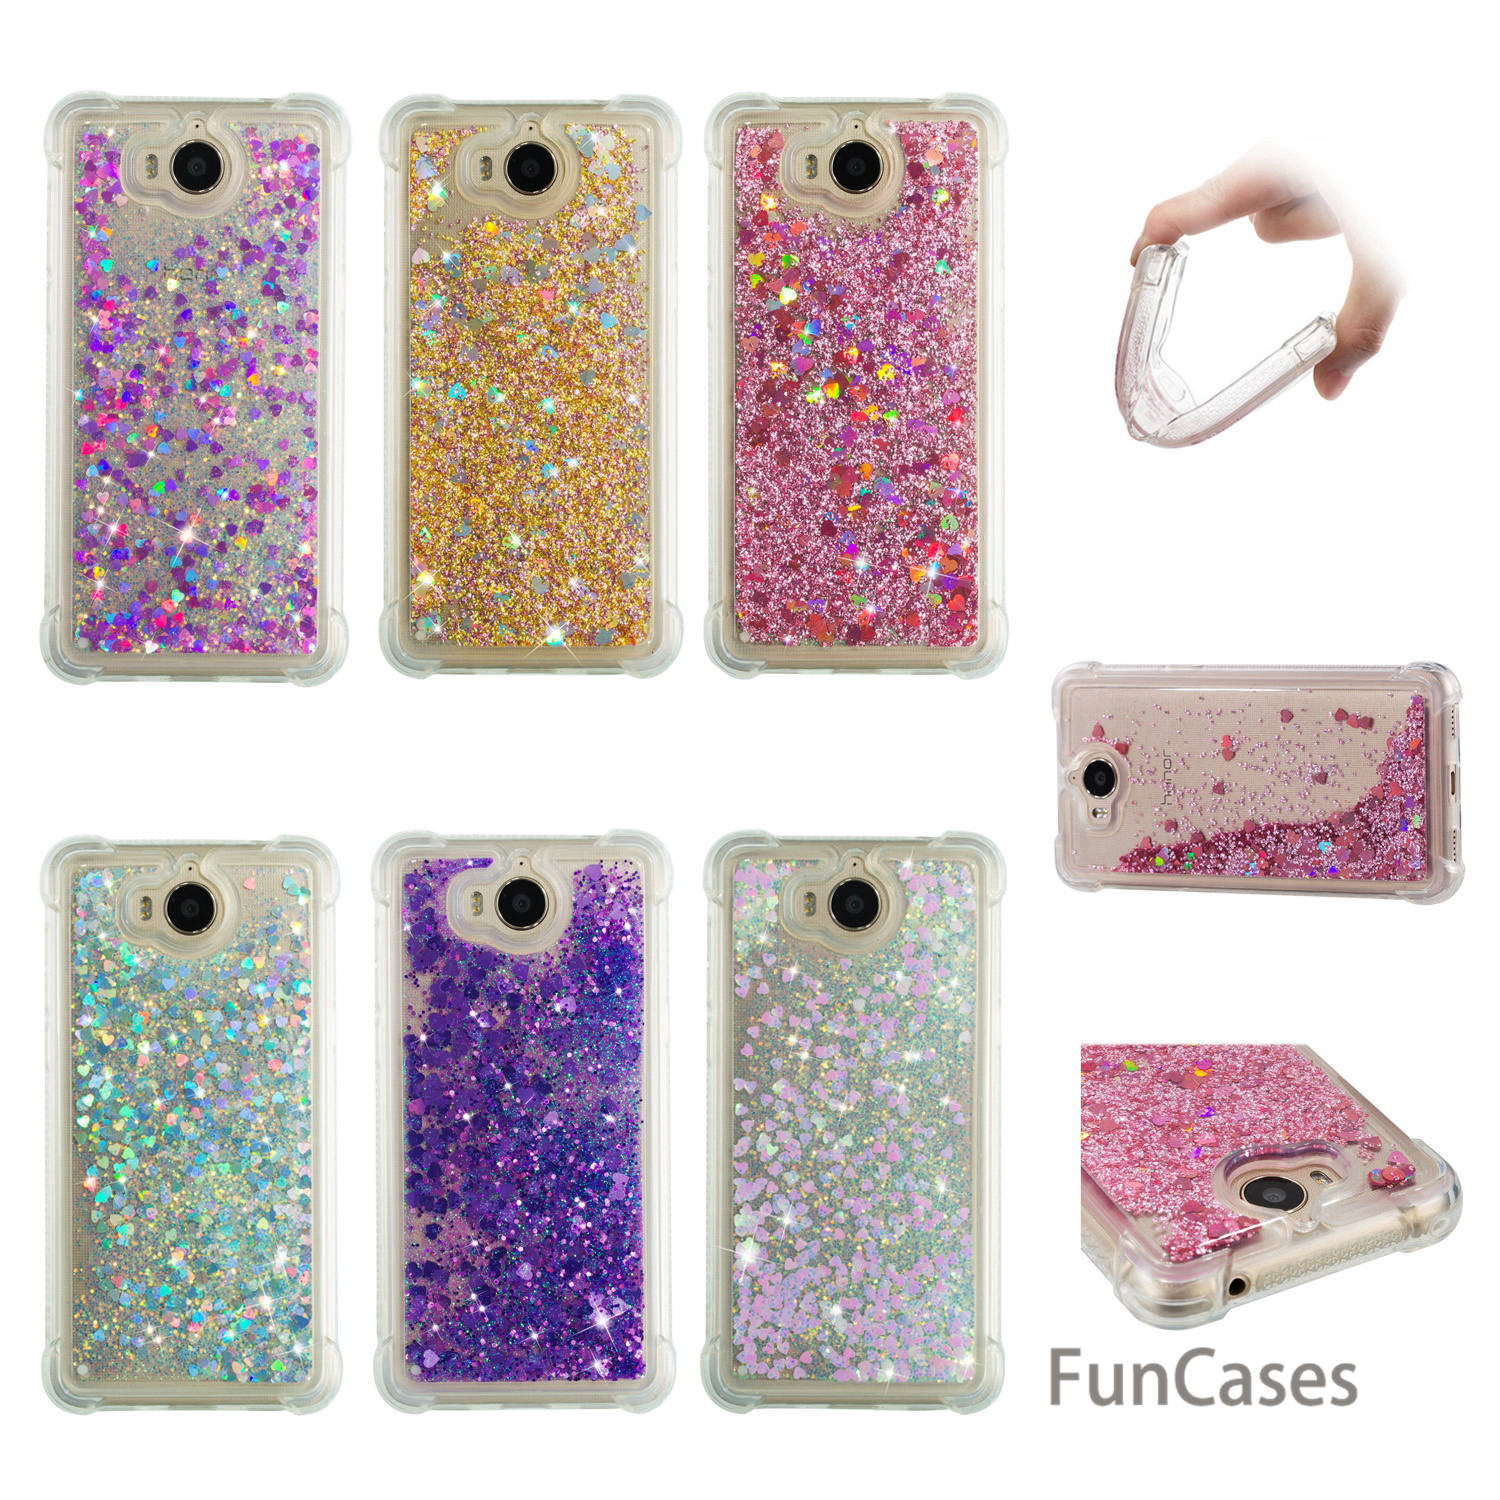 Glitter Case sFor Capinha <font><b>Huawei</b></font> Y5 <font><b>2017</b></font> Soft Silicone Back Cover Cellular Jewelled Case <font><b>Huawei</b></font> Ascend Y5 ii <font><b>2017</b></font> Huawey <font><b>Y6</b></font> <font><b>2017</b></font> image